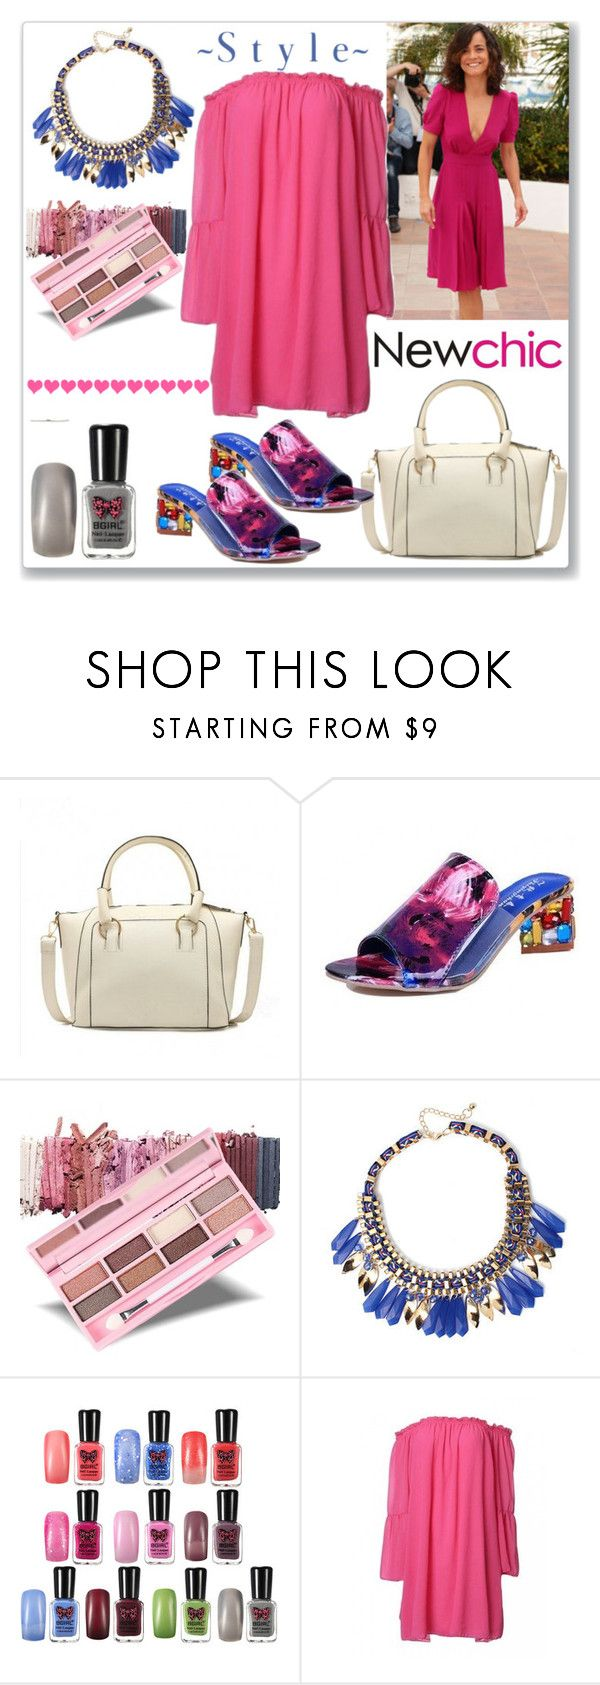 """""""LoveNewChic - 24"""" by ludmyla-stoyan ❤ liked on Polyvore featuring Gucci and vintage"""